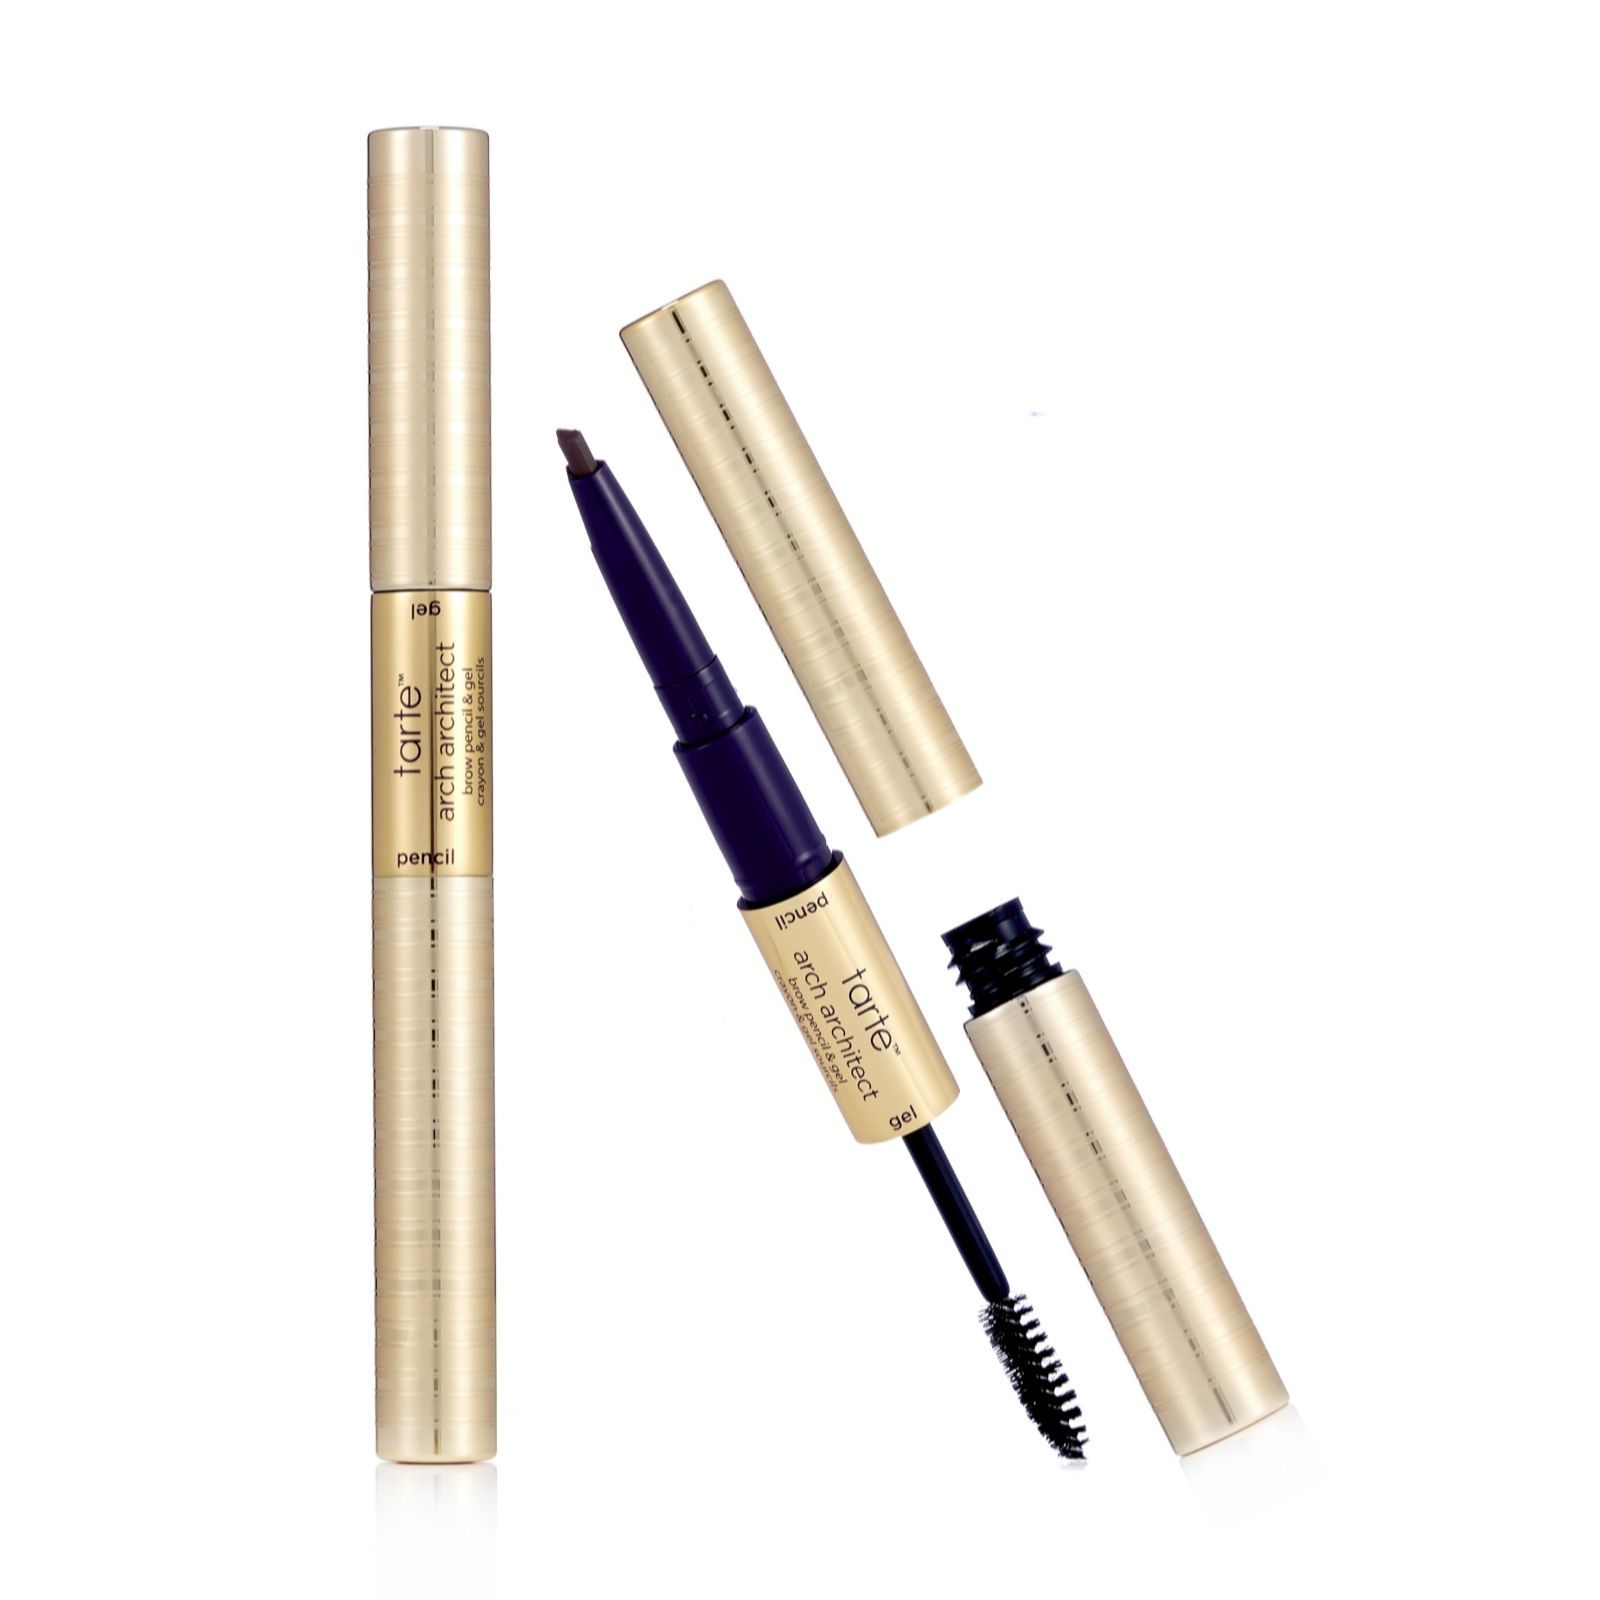 Tarte Arch Architect Brow Pencil & Gel Duo - QVC UK